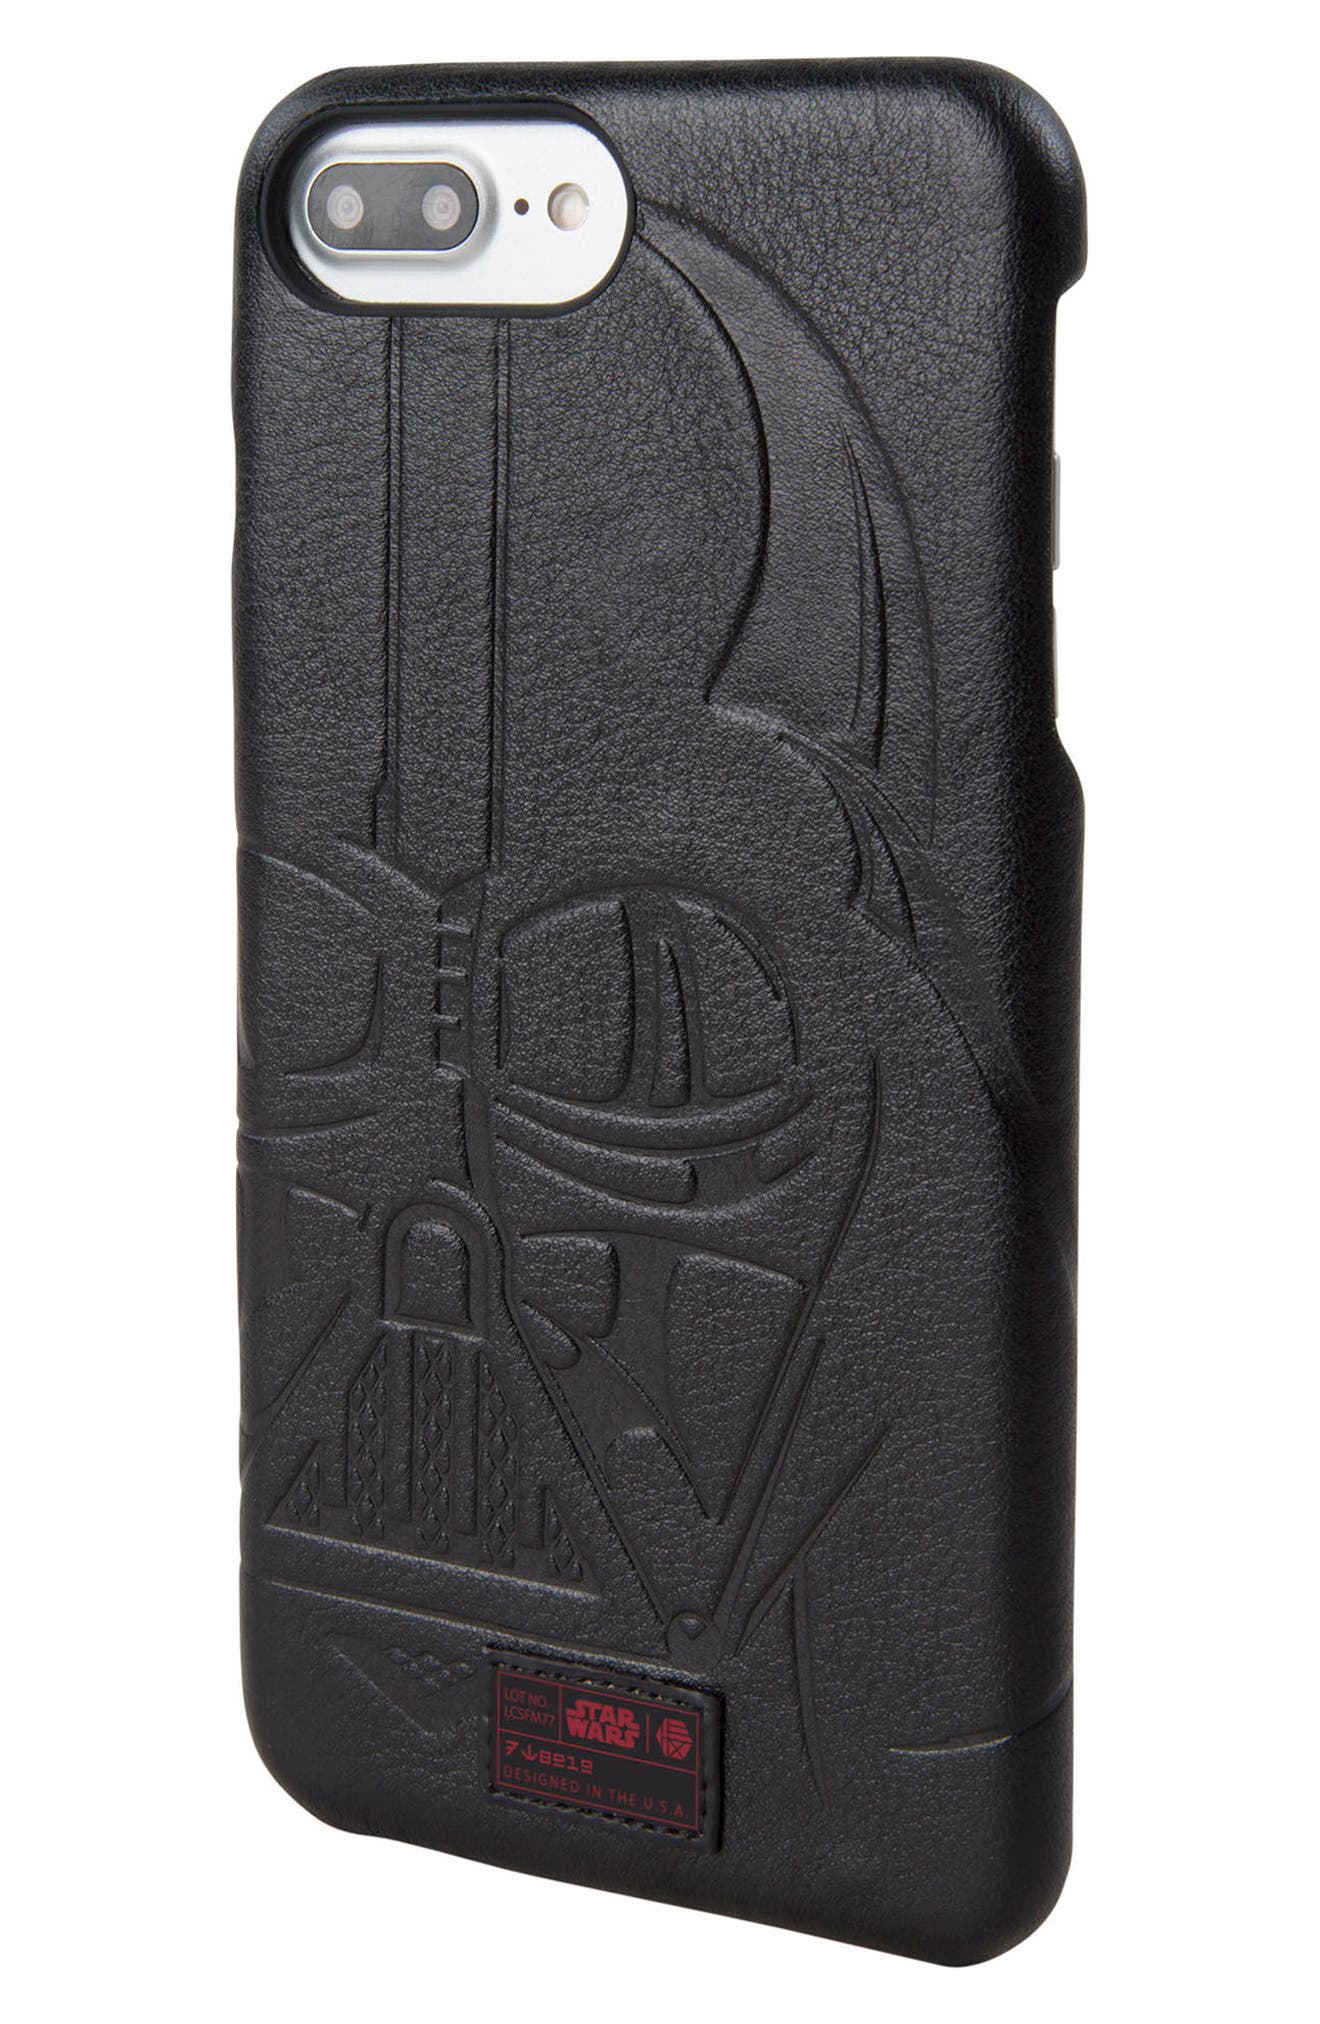 Darth Vader iPhone 6/6s/7/8 Plus Case,                             Main thumbnail 1, color,                             Black